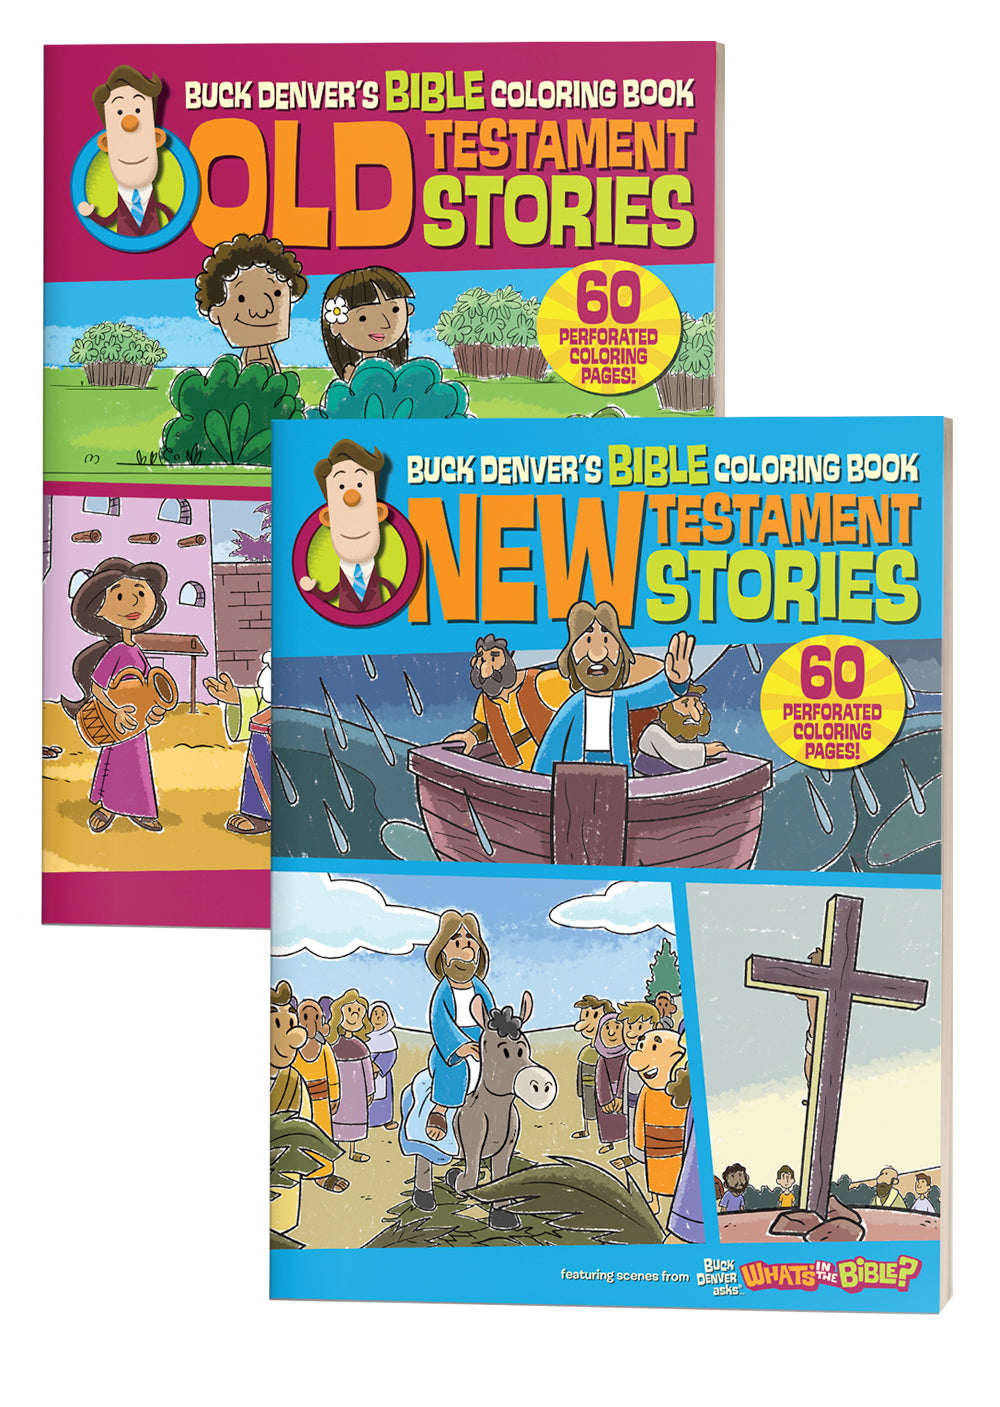 Buck denvers bible coloring book old new testament stories